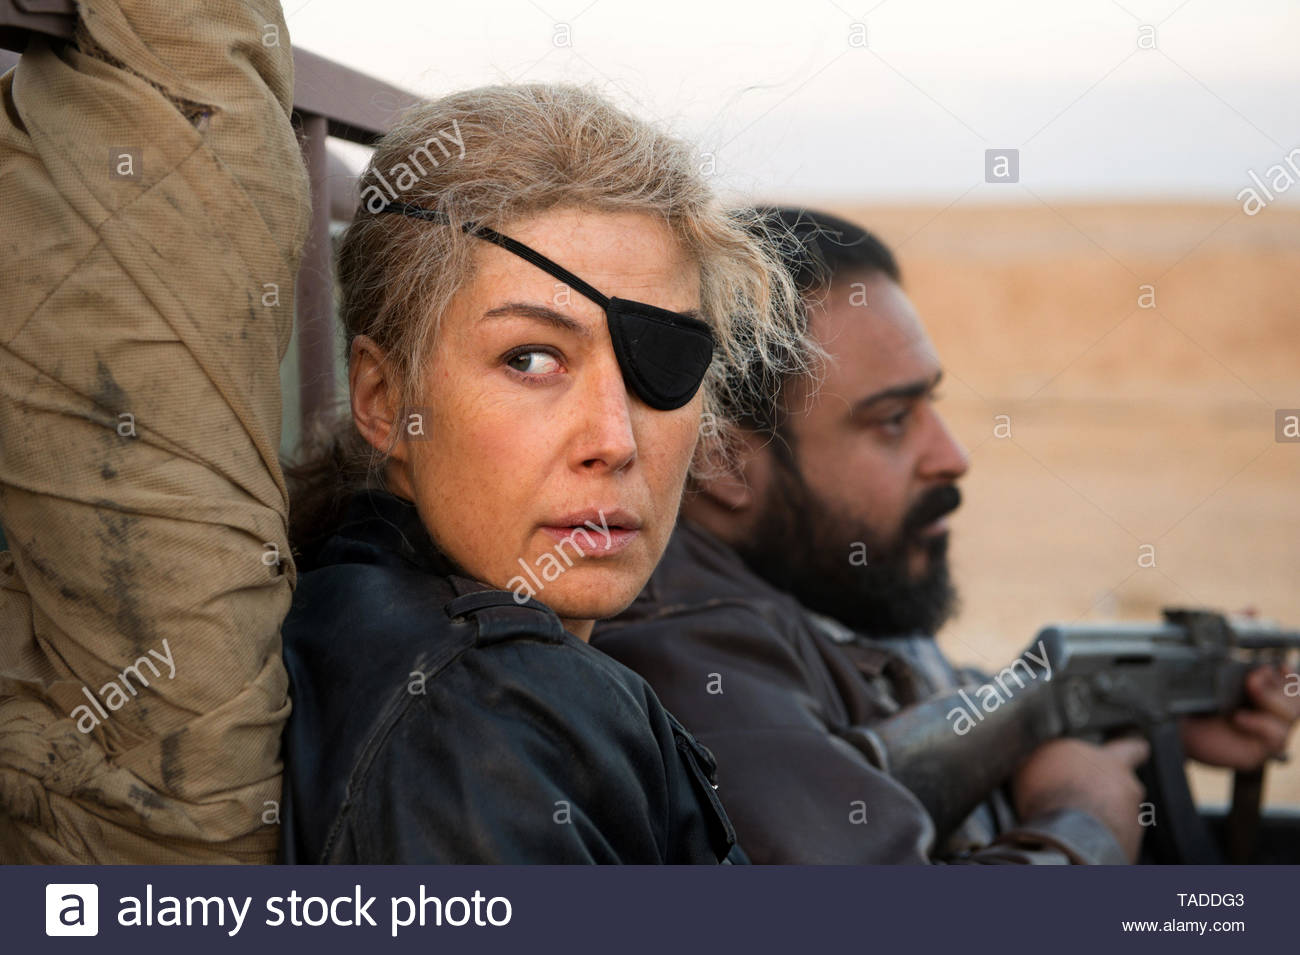 Undated film still handout from A Private War. Pictured: Rosamund Pike as Marie Colvin. See PA Feature SHOWBIZ Download Reviews. Picture credit should read: PA Photo/APW Film II, Limited/Altitude Film Distribution/Paul Conroy. All Rights Reserved. WARNING: This picture must only be used to accompany PA Feature SHOWBIZ Download Reviews. - Stock Image